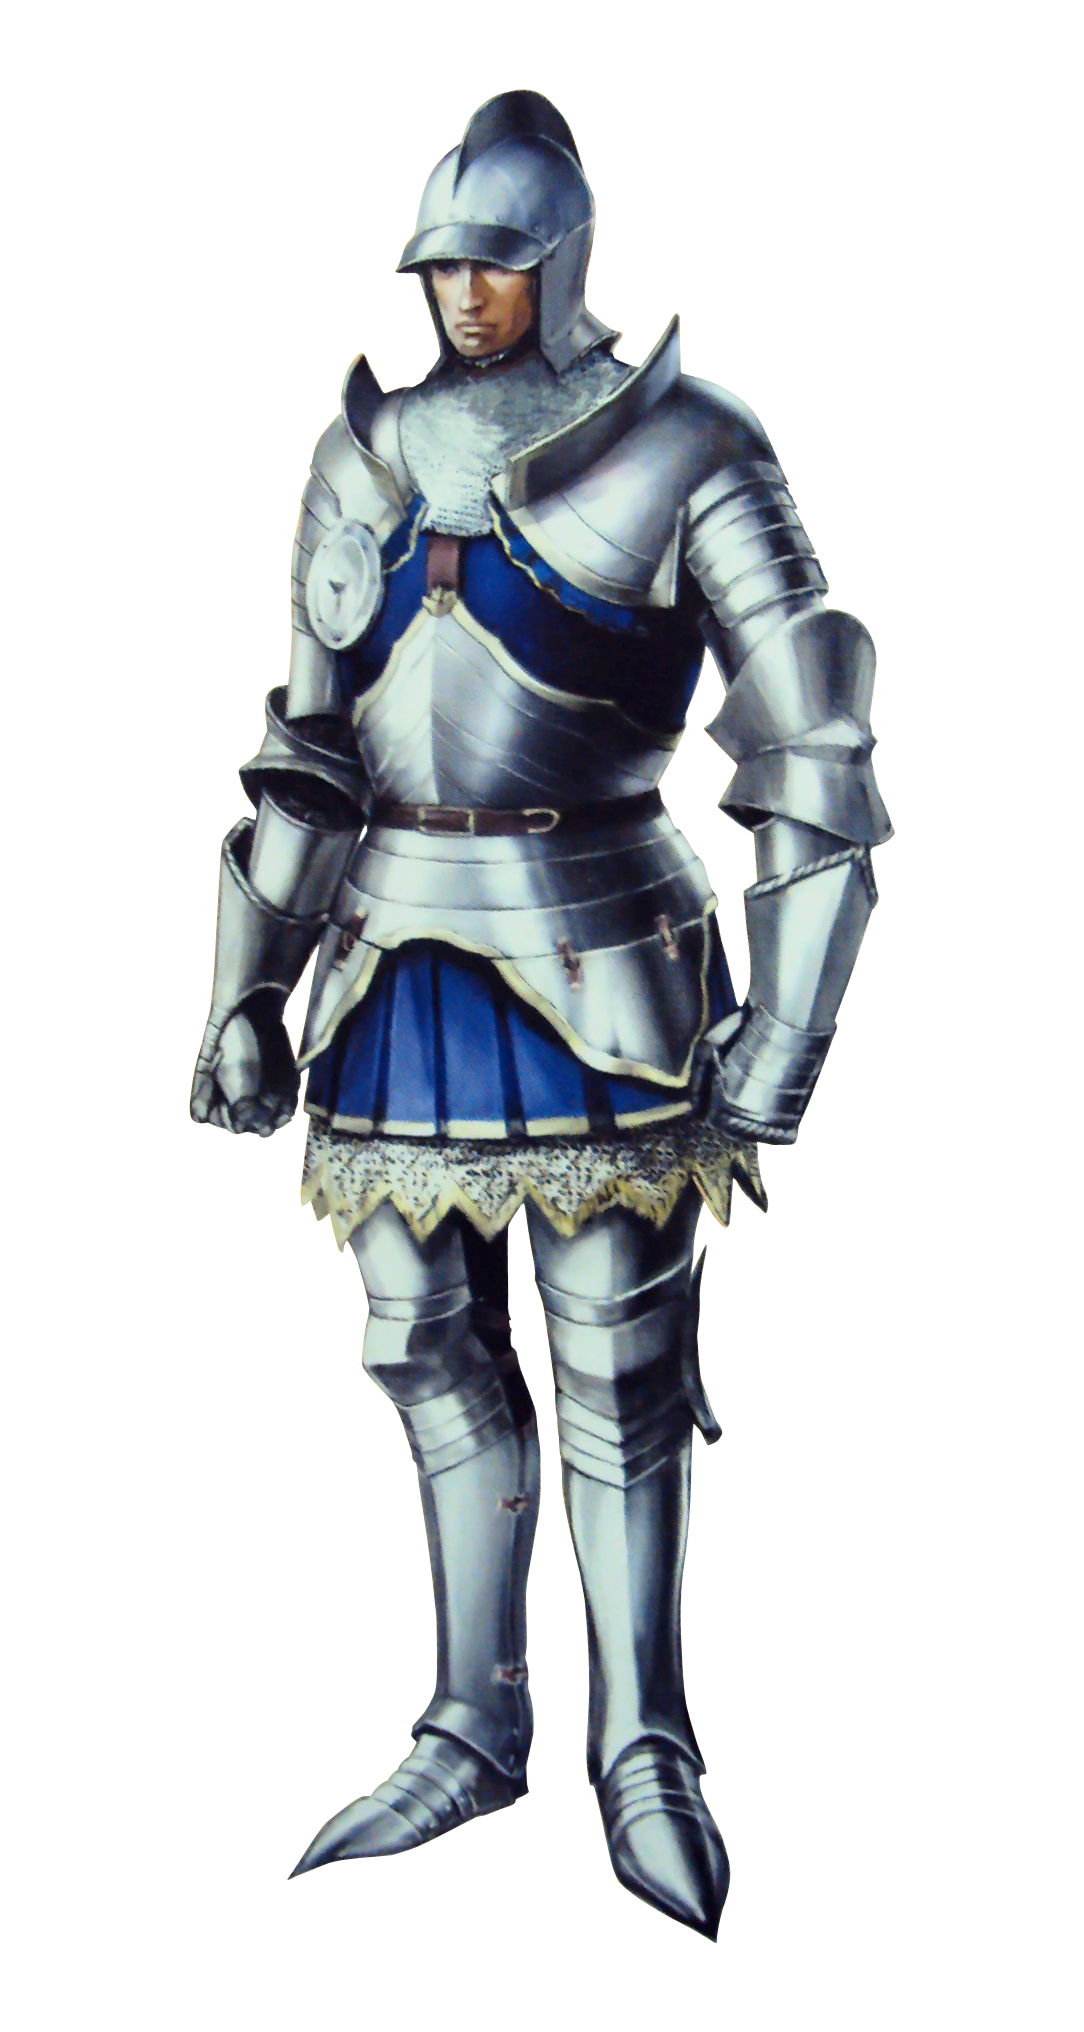 PlusPNG - Knight PNG